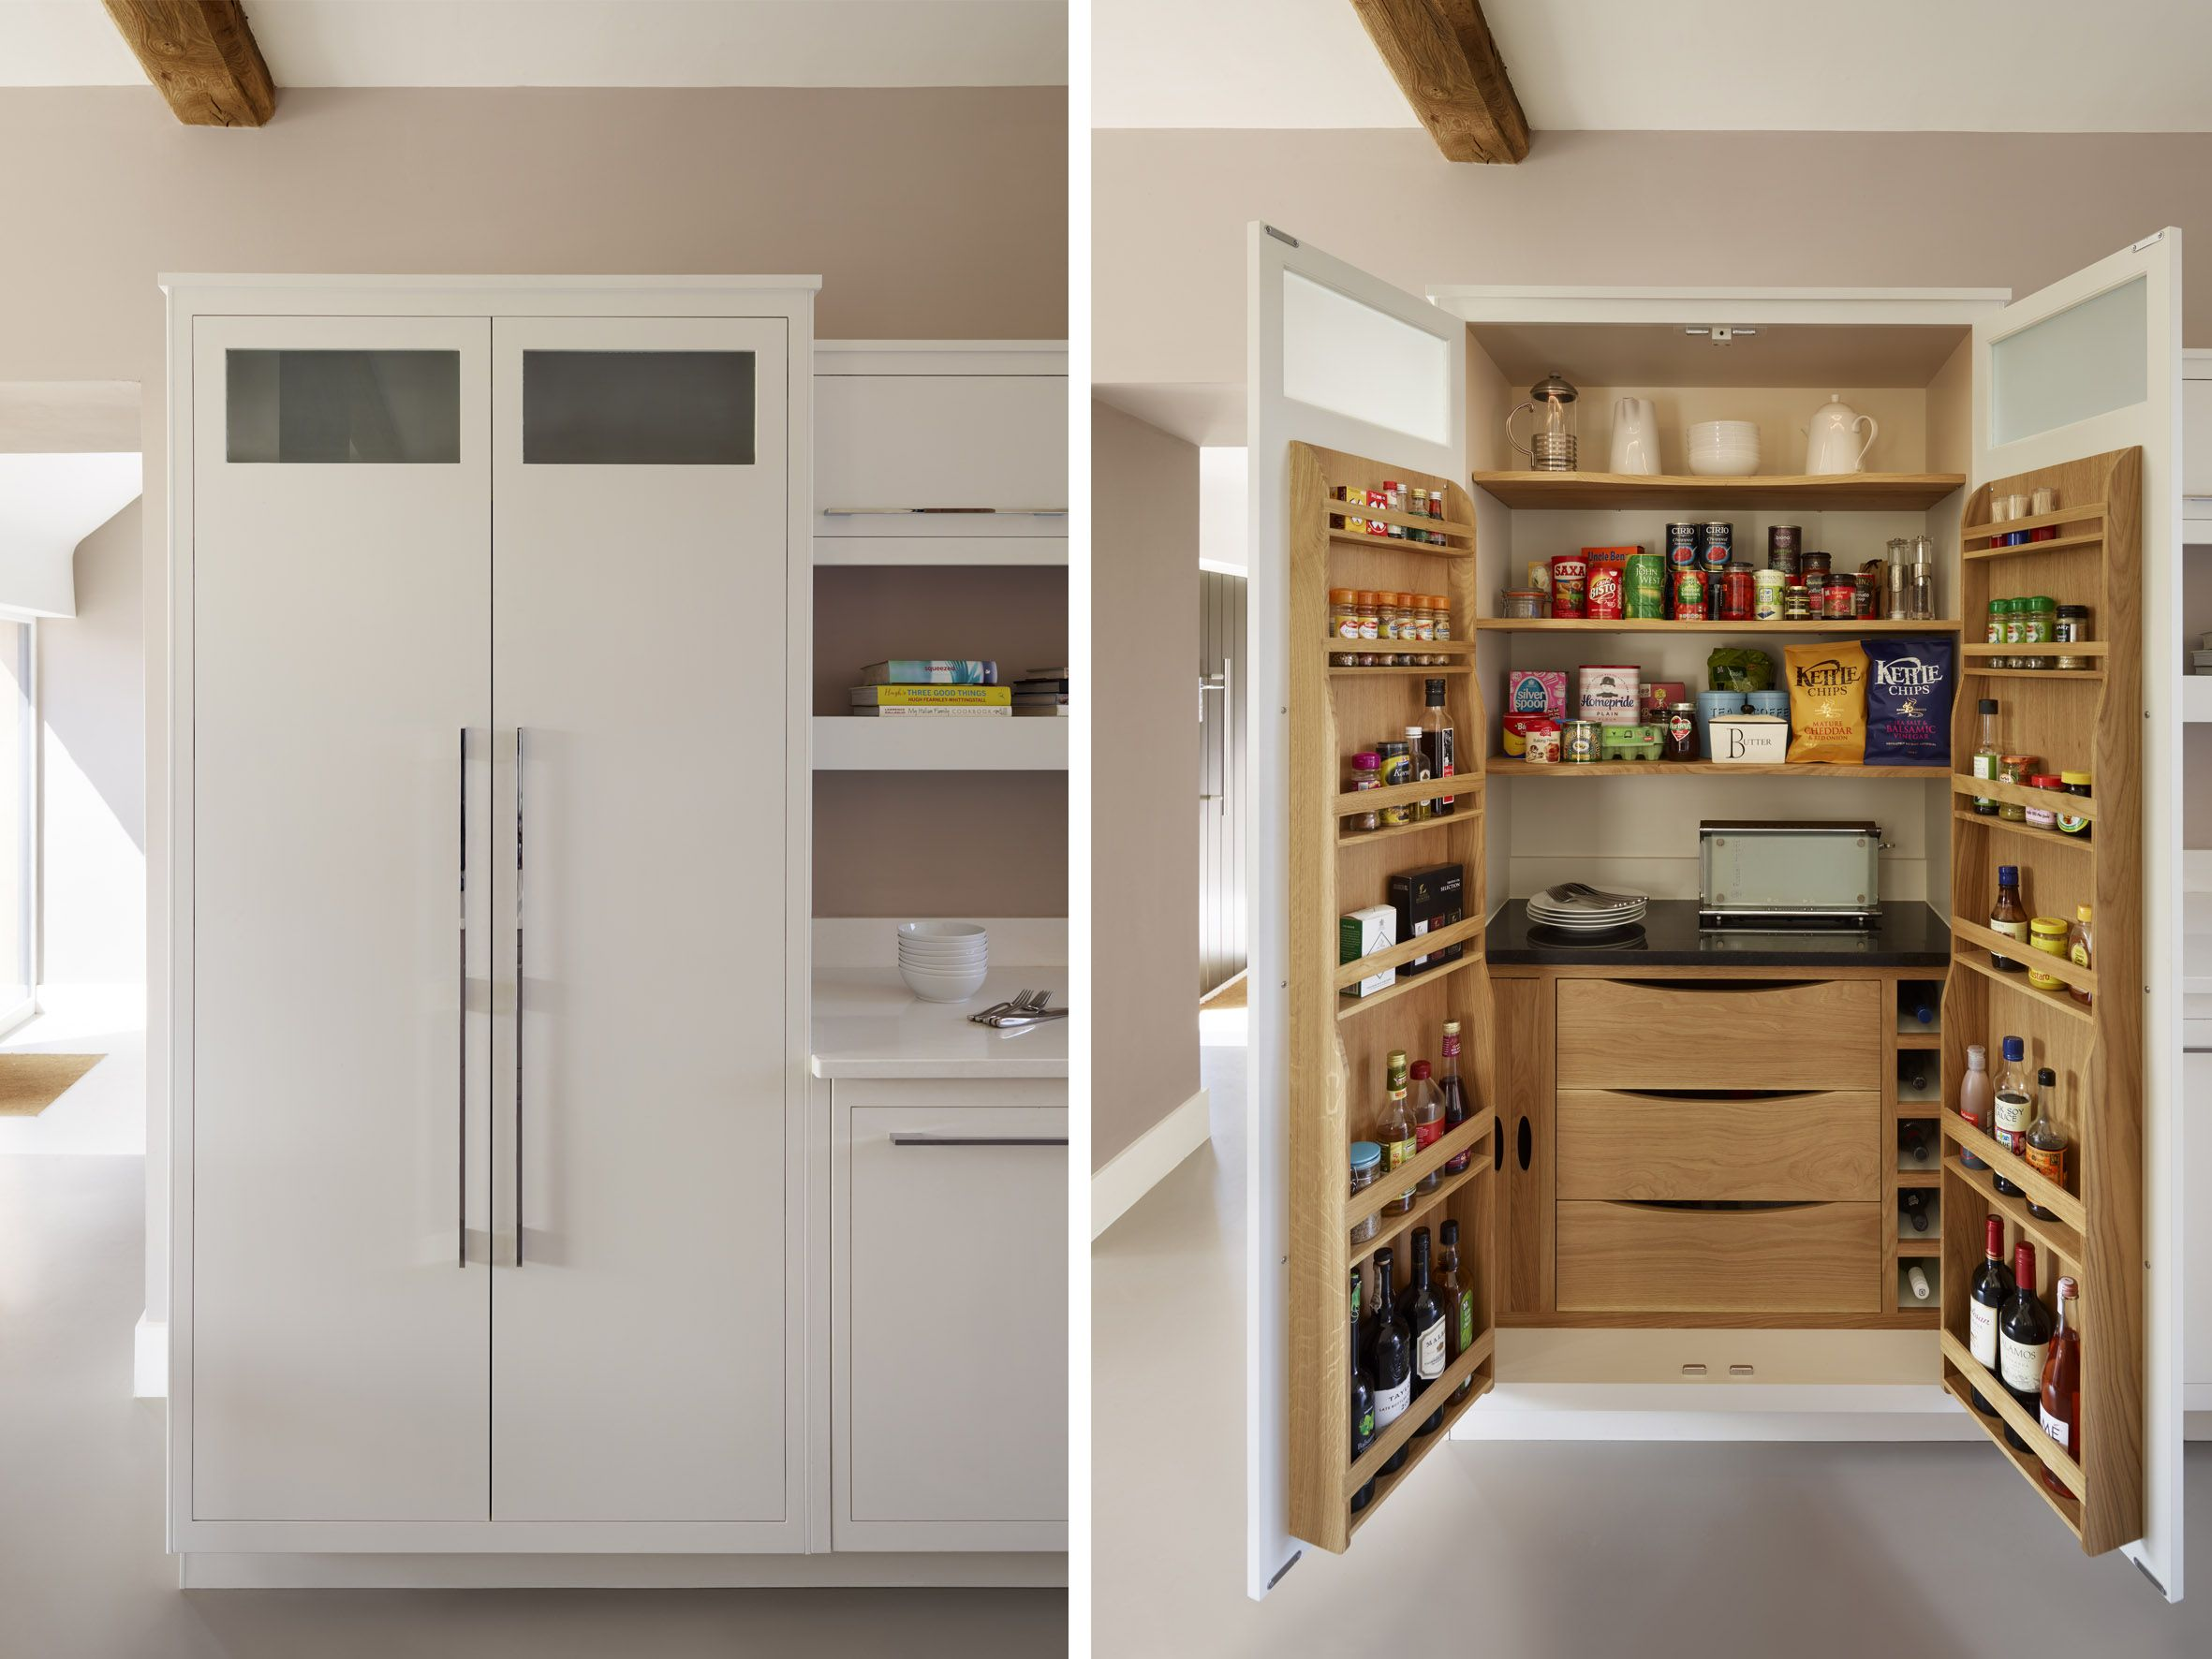 Our New Linear Pantry Larder Complete With Wine Rack Oak Door Mounted Spice Racks Removable